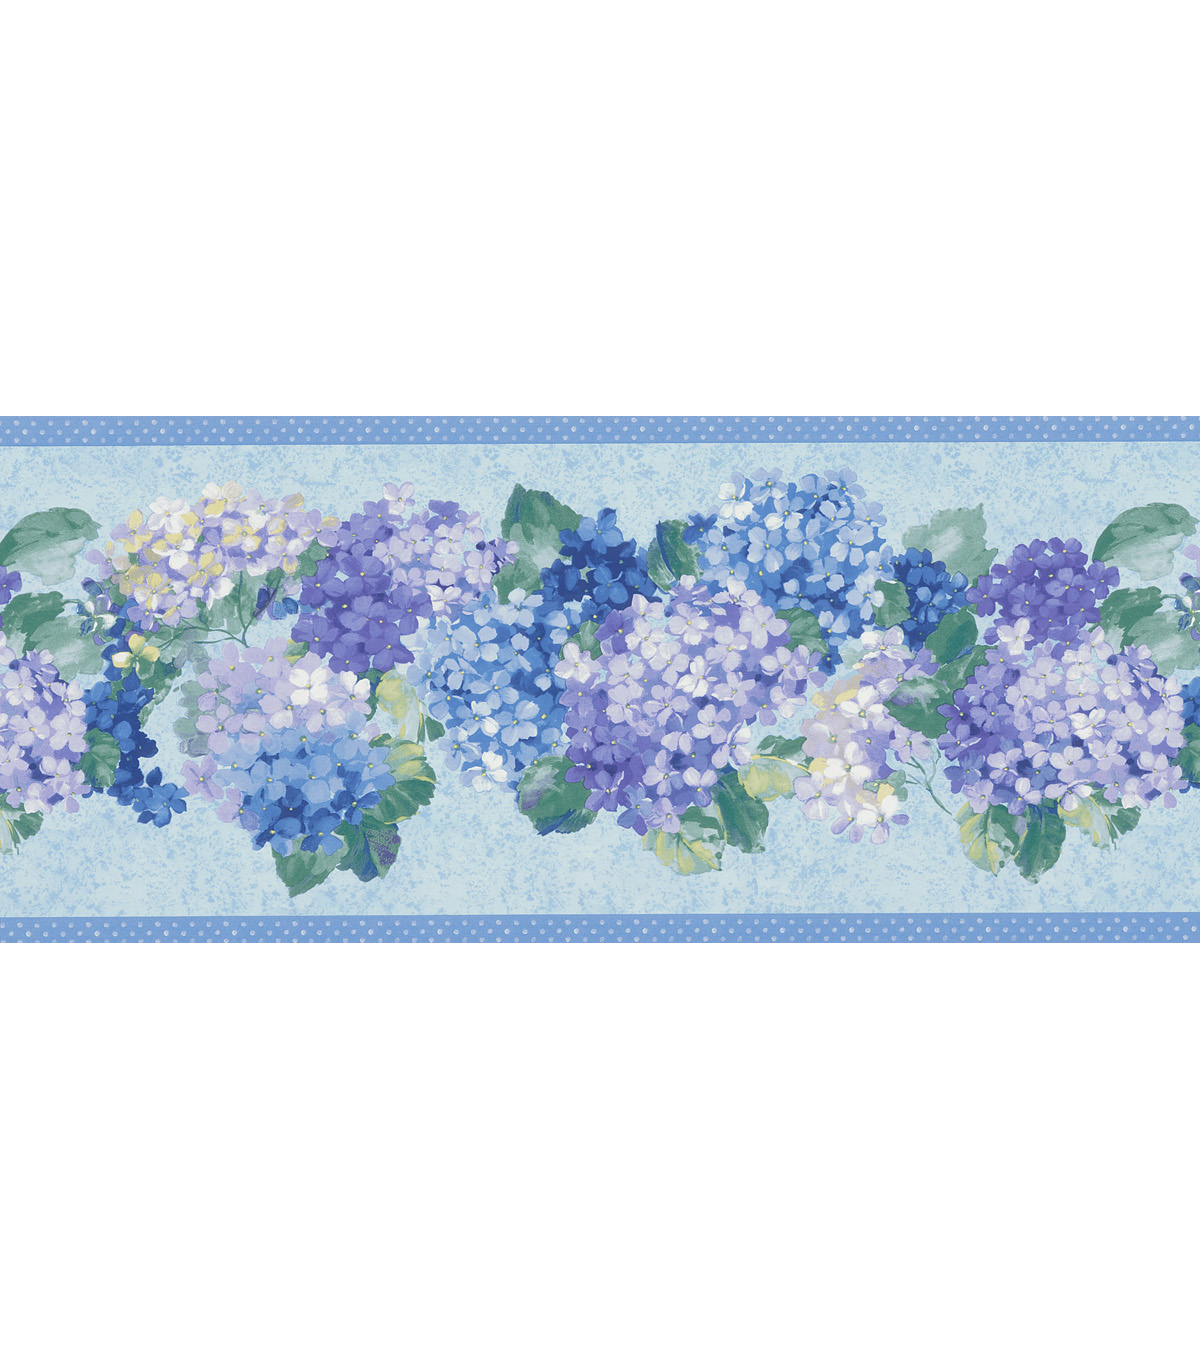 Boat Scenic Wallpaper Border Blue Sample Jo Ann 1200x1360